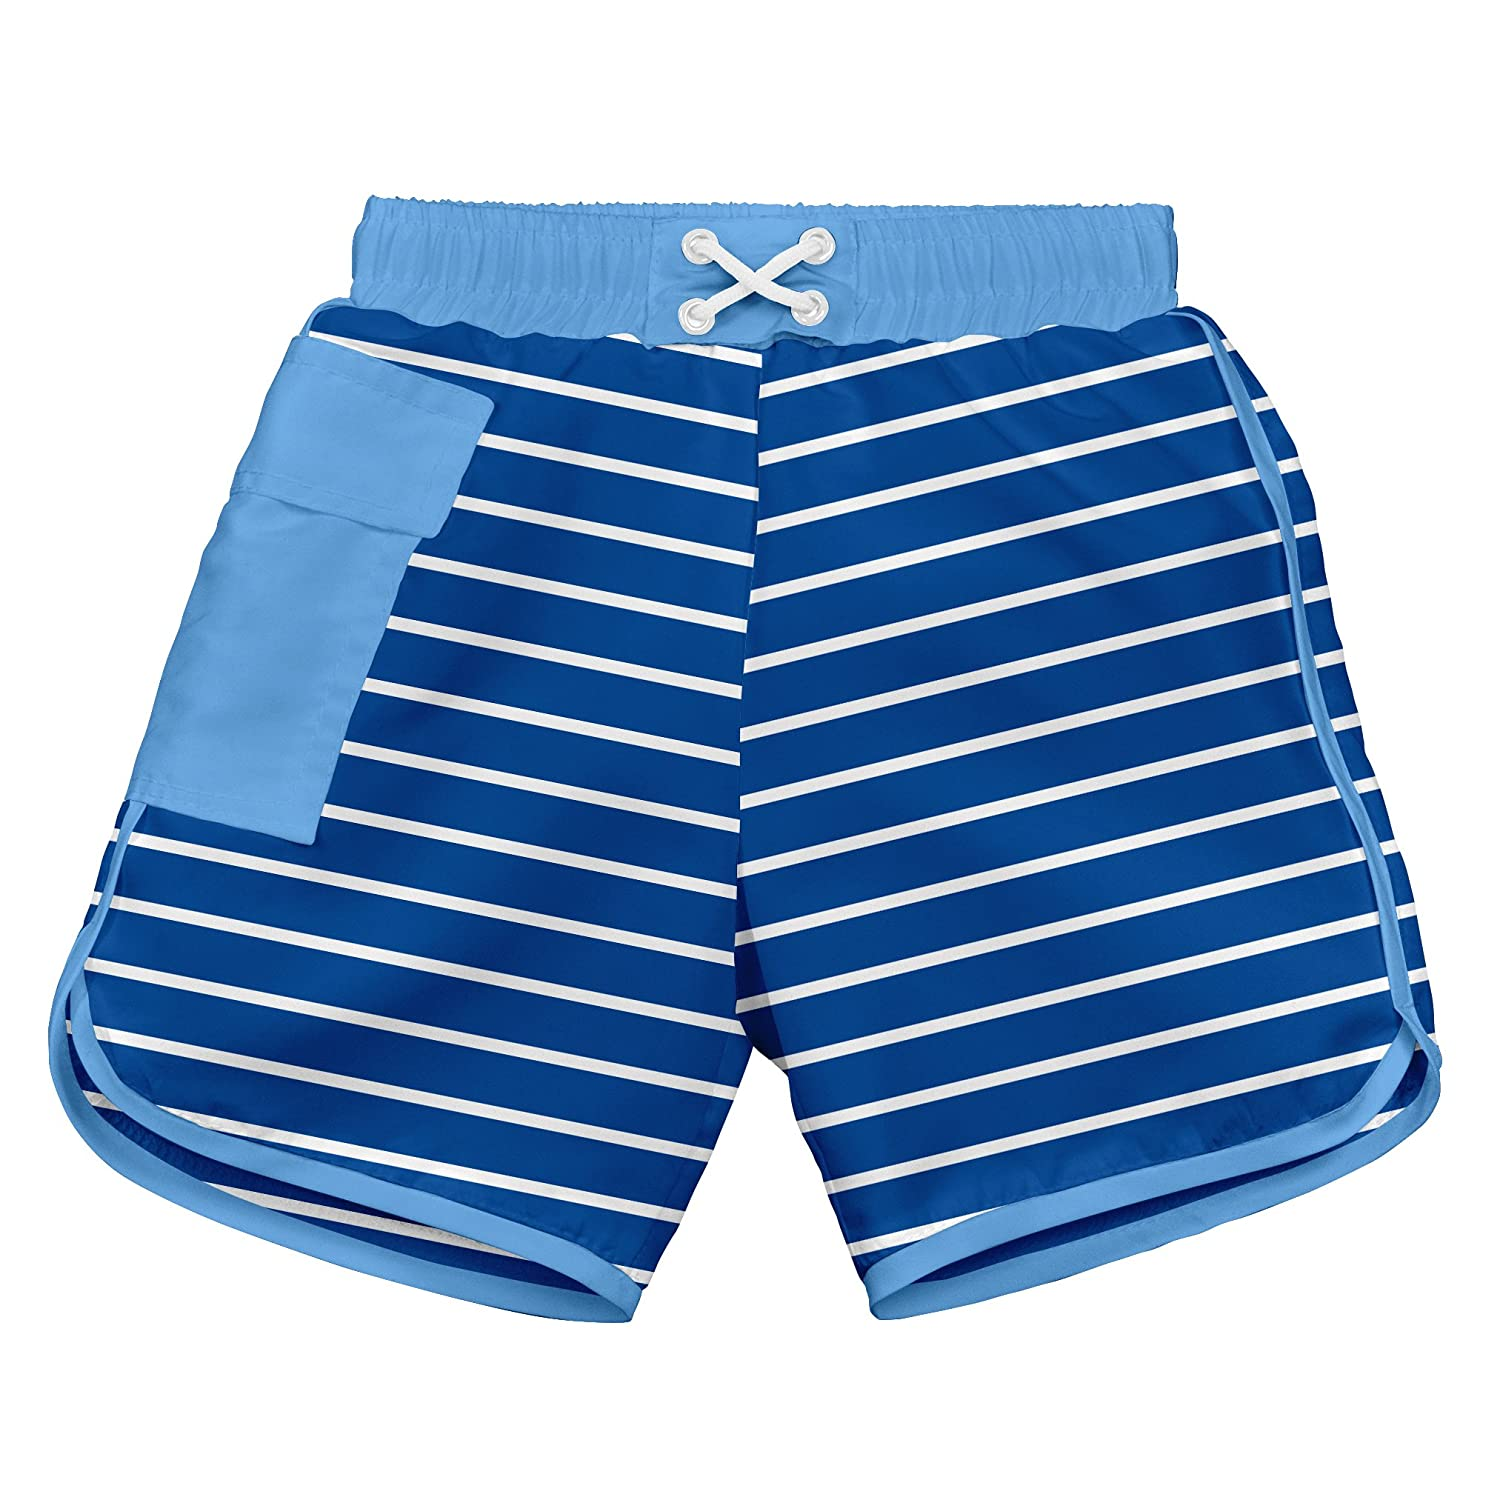 I-Play. Baby Boys' Pocket Board Shorts with Built-In Reusable Absorbent Swim Diaper i play Children' s Apparel 722190